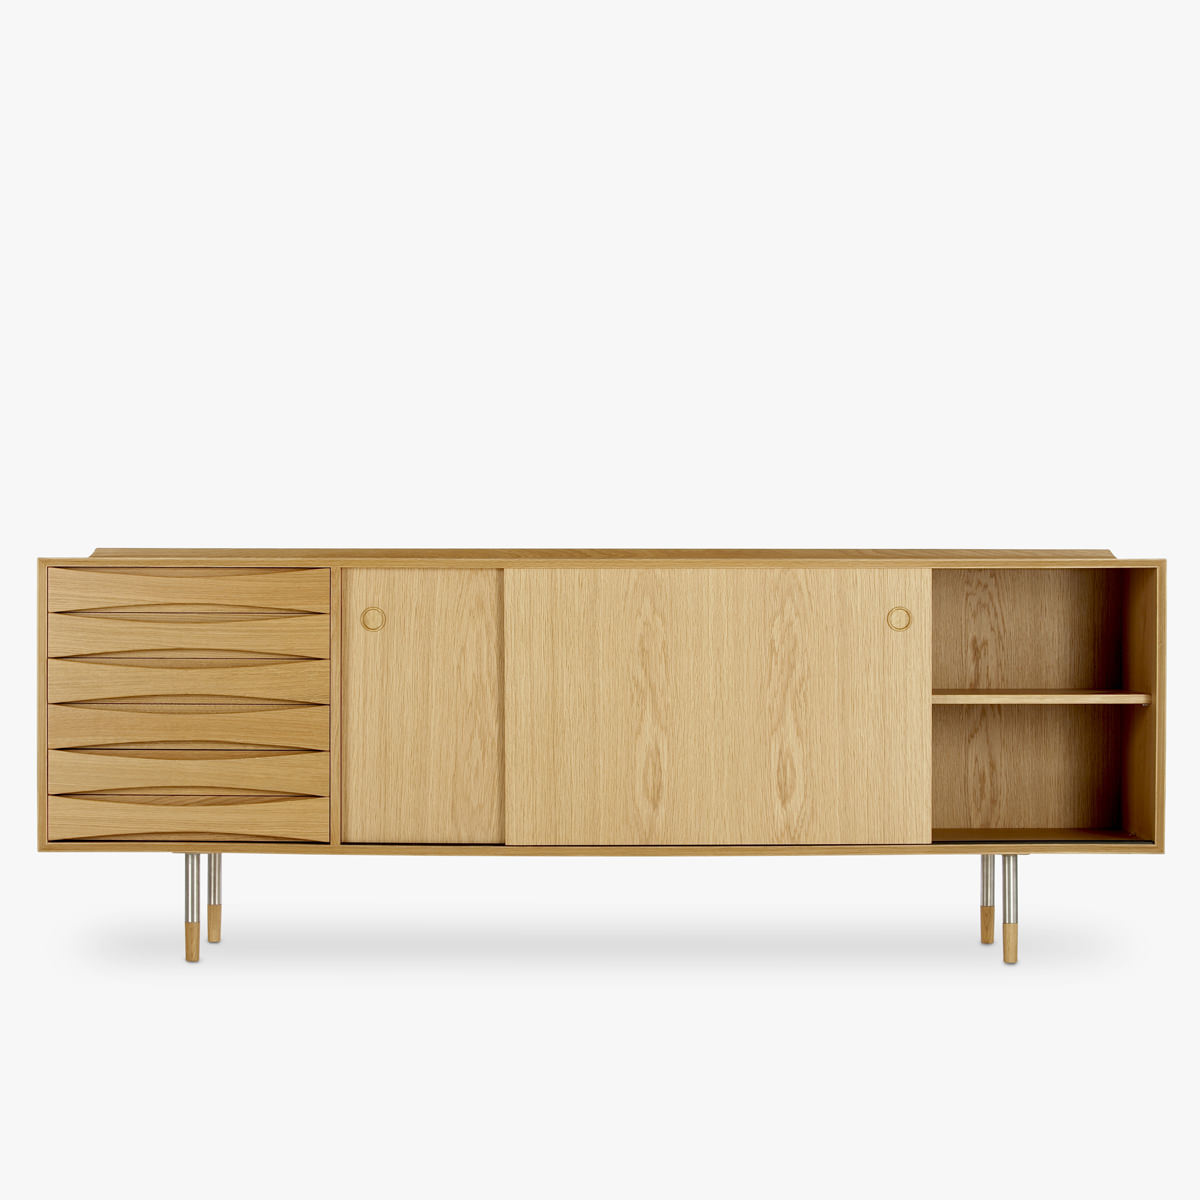 Vodder-26-Sideboard-Oak-Open2-1200